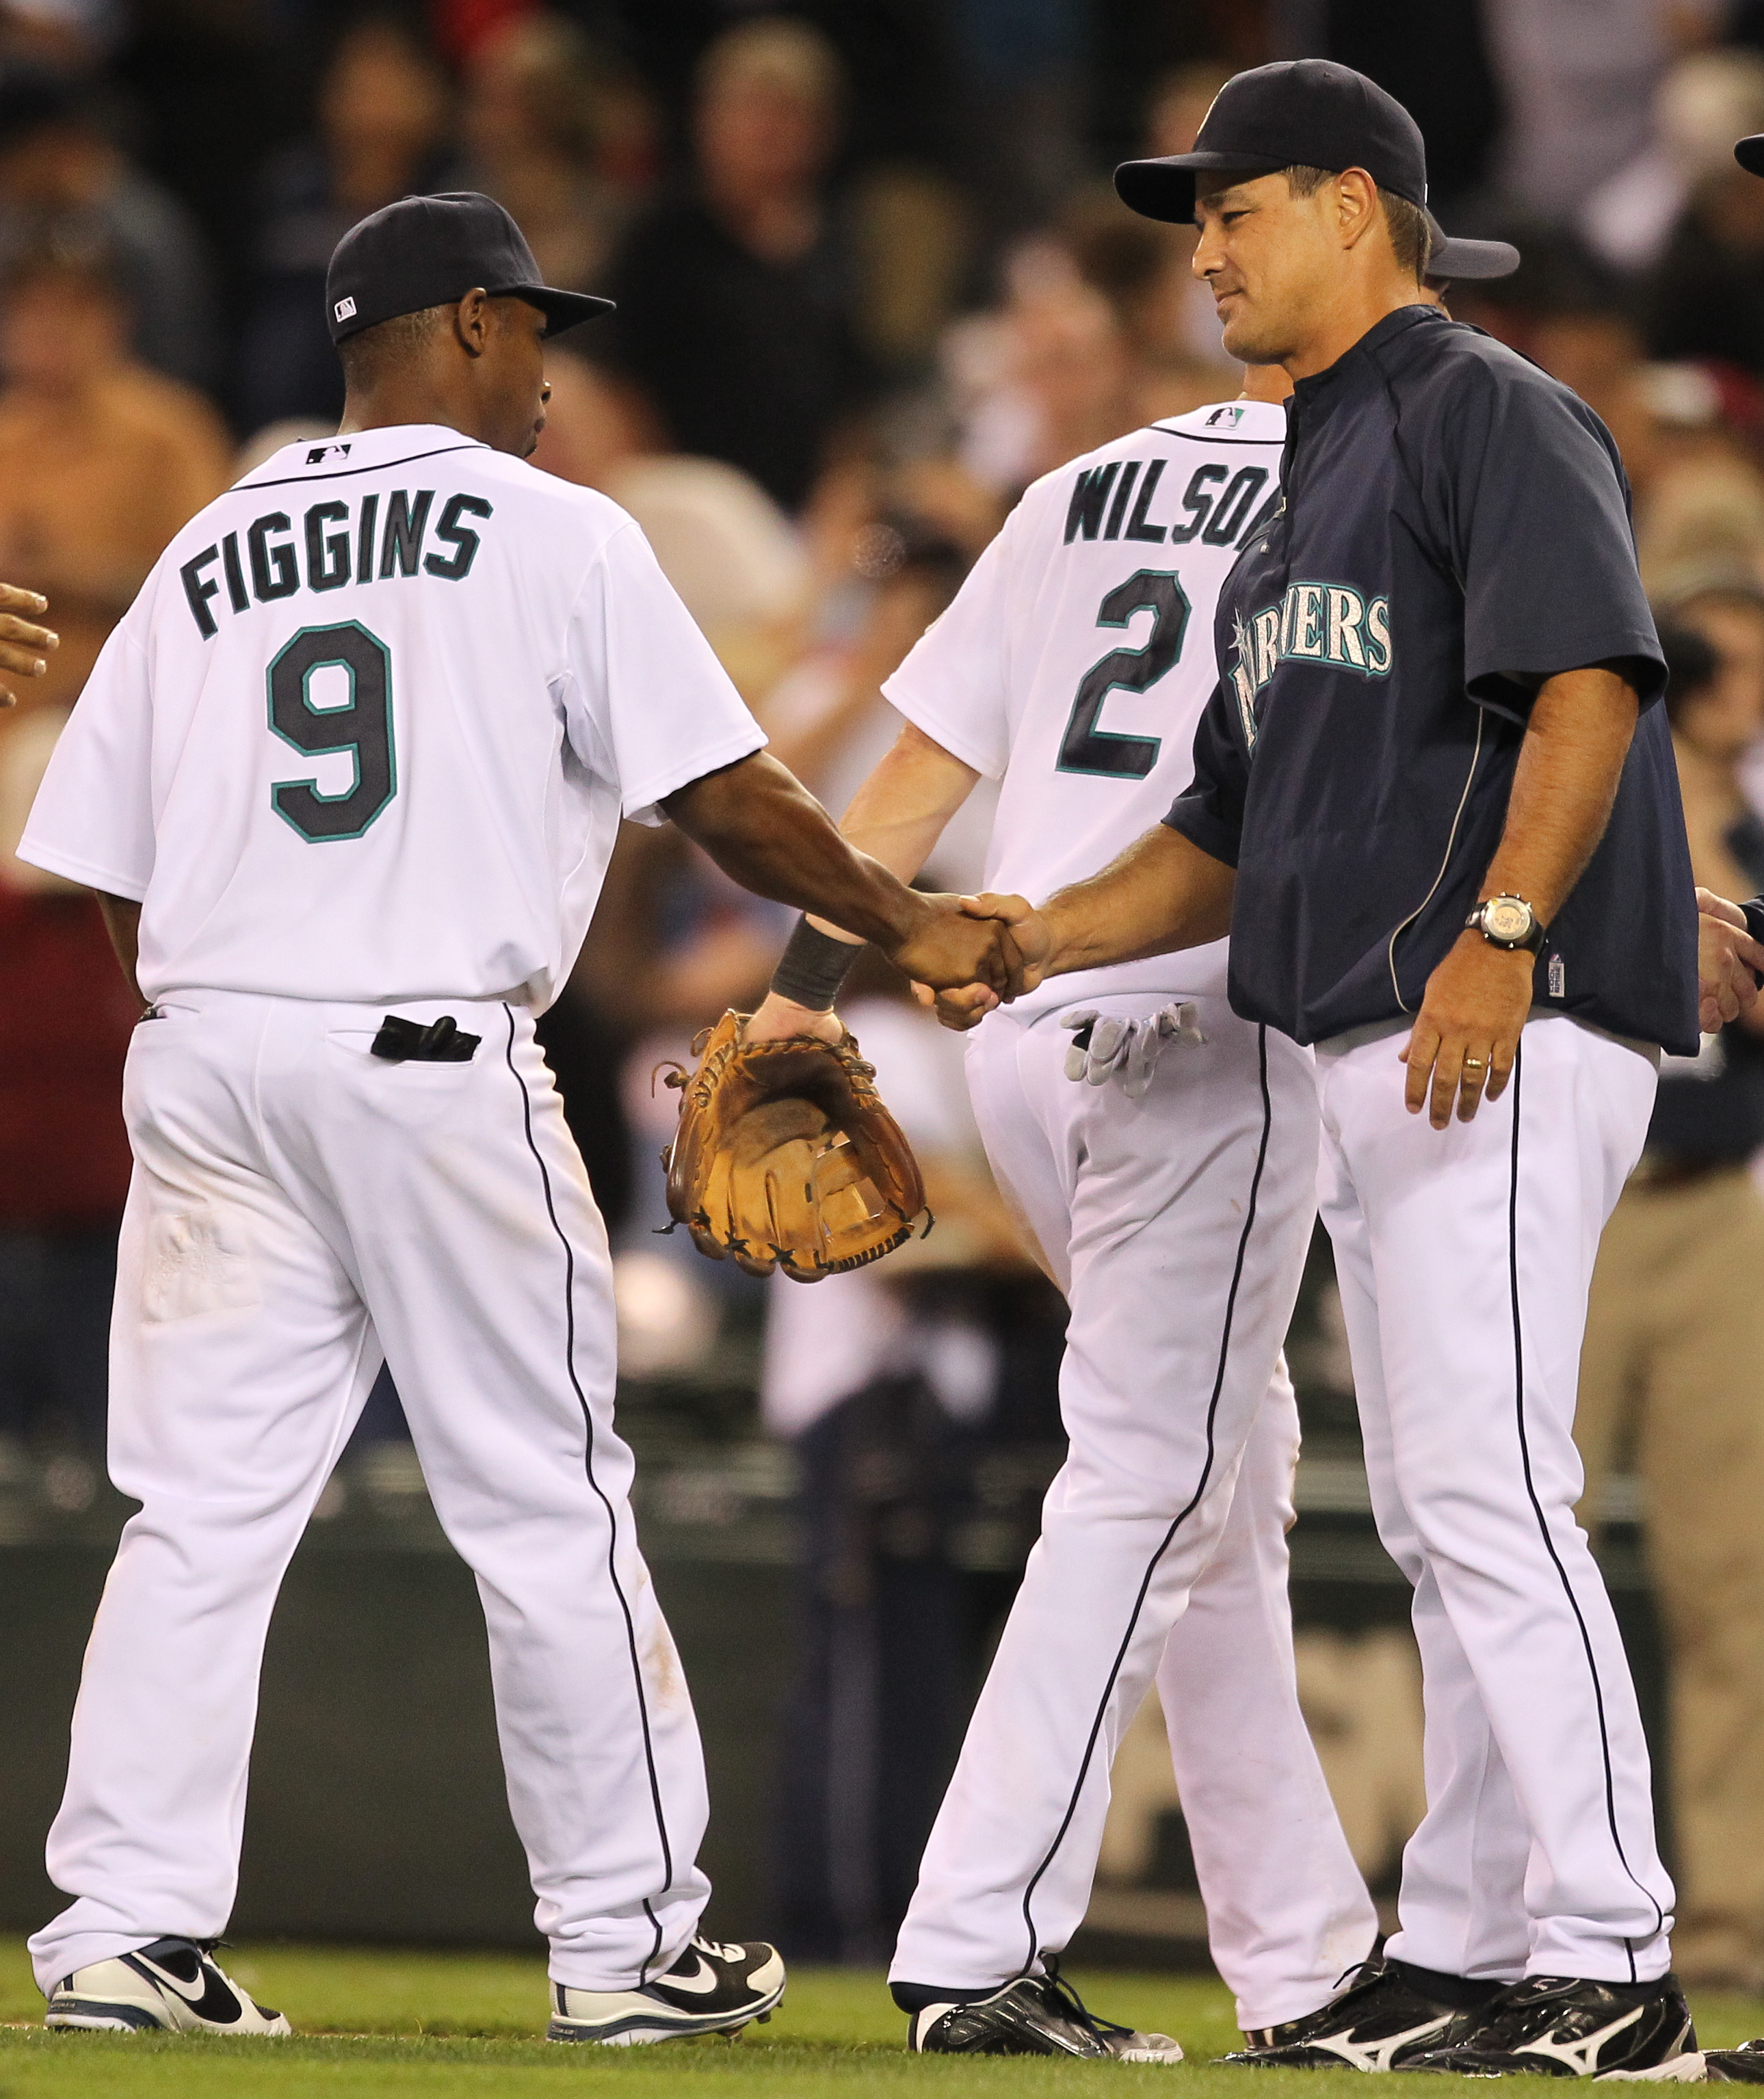 SEATTLE - AUGUST 03:  Manager Don Wakamatsu #22 of the Seattle Mariners congratulates Chone Figgins #9 after defeating the Texas Rangers 3-2 at Safeco Field on August 3, 2010 in Seattle, Washington. (Photo by Otto Greule Jr/Getty Images)